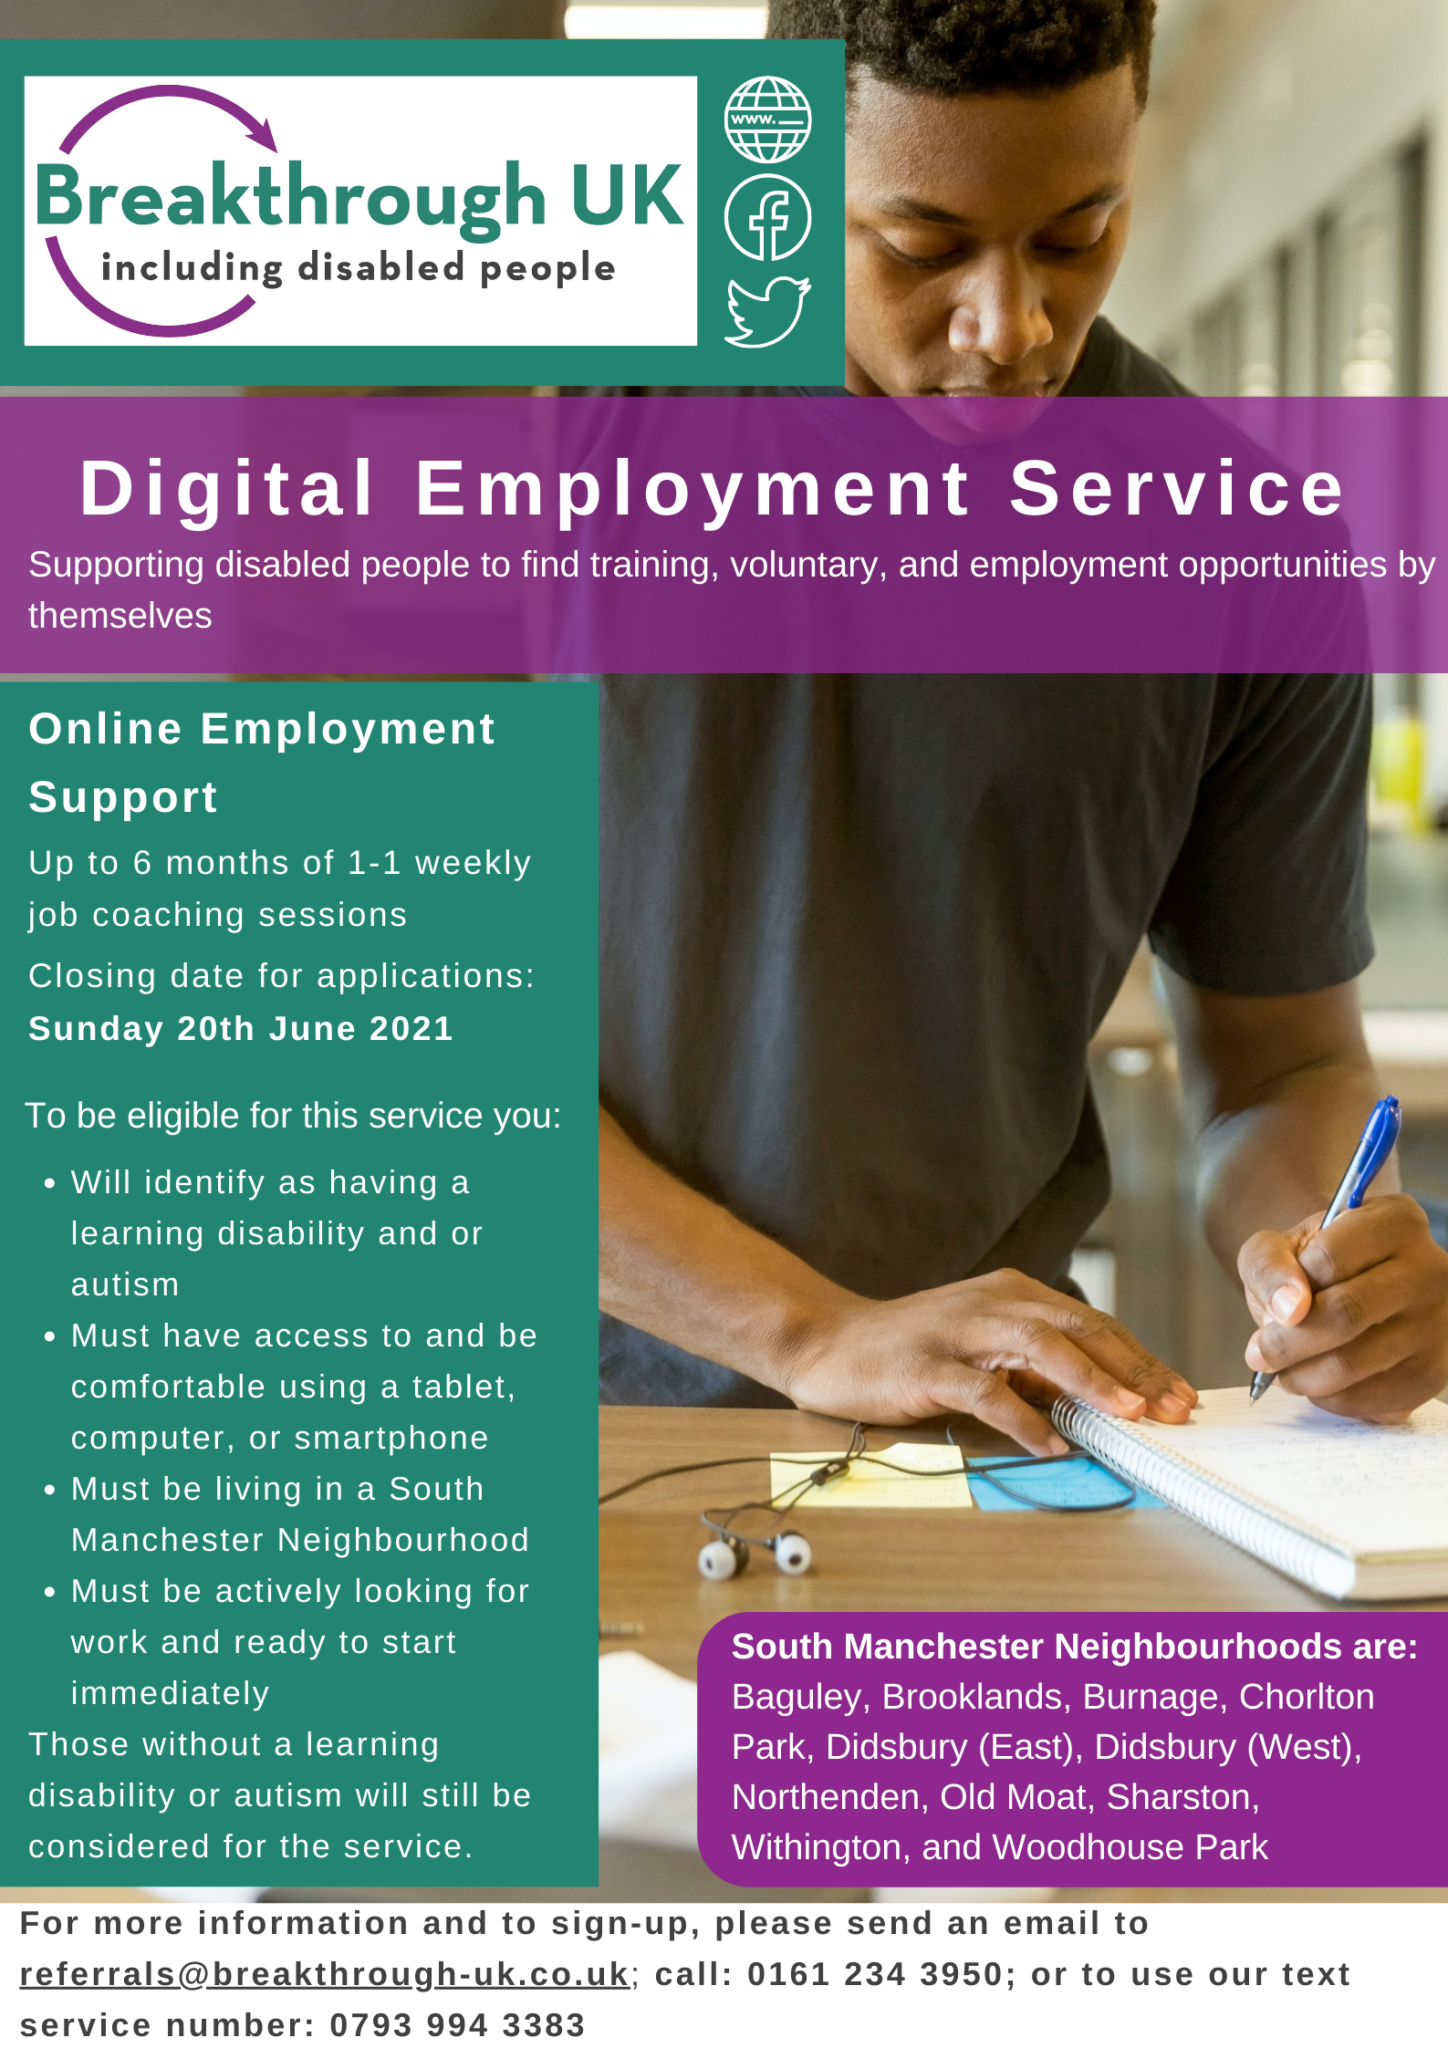 Digital Employment Service. Supporting disabled people find training, voluntary, and employment opportunities by themselves. Online employment support. Up to 6 months of 1-1 weekly job coaching sessions. Closing date for applications: Sunday 20th June 2021. To be eligible for this service you: Will identify as having a learning disability and/or autism. Must have access to and be comfortable using a tablet, computer or smartphone. Must be living in a South Manchester Neighbourhood. Must be actively looking for work and ready to start immediately. Those without a learning disability or autism will still be considered for the service. South Manchester Neighbourhoods are: Baguley, Brooklands, Burnage, Chorlton Park, Didsbury (East), Didsbury (West), Northenden, Old Moat, Sharston, Withinginton, and Woodhouse Park. Form more information and to sign up, please send an email to referrals@breakthrough-uk.co.uk, call 0161 234 3950 or use our text service number 0793 994 3383